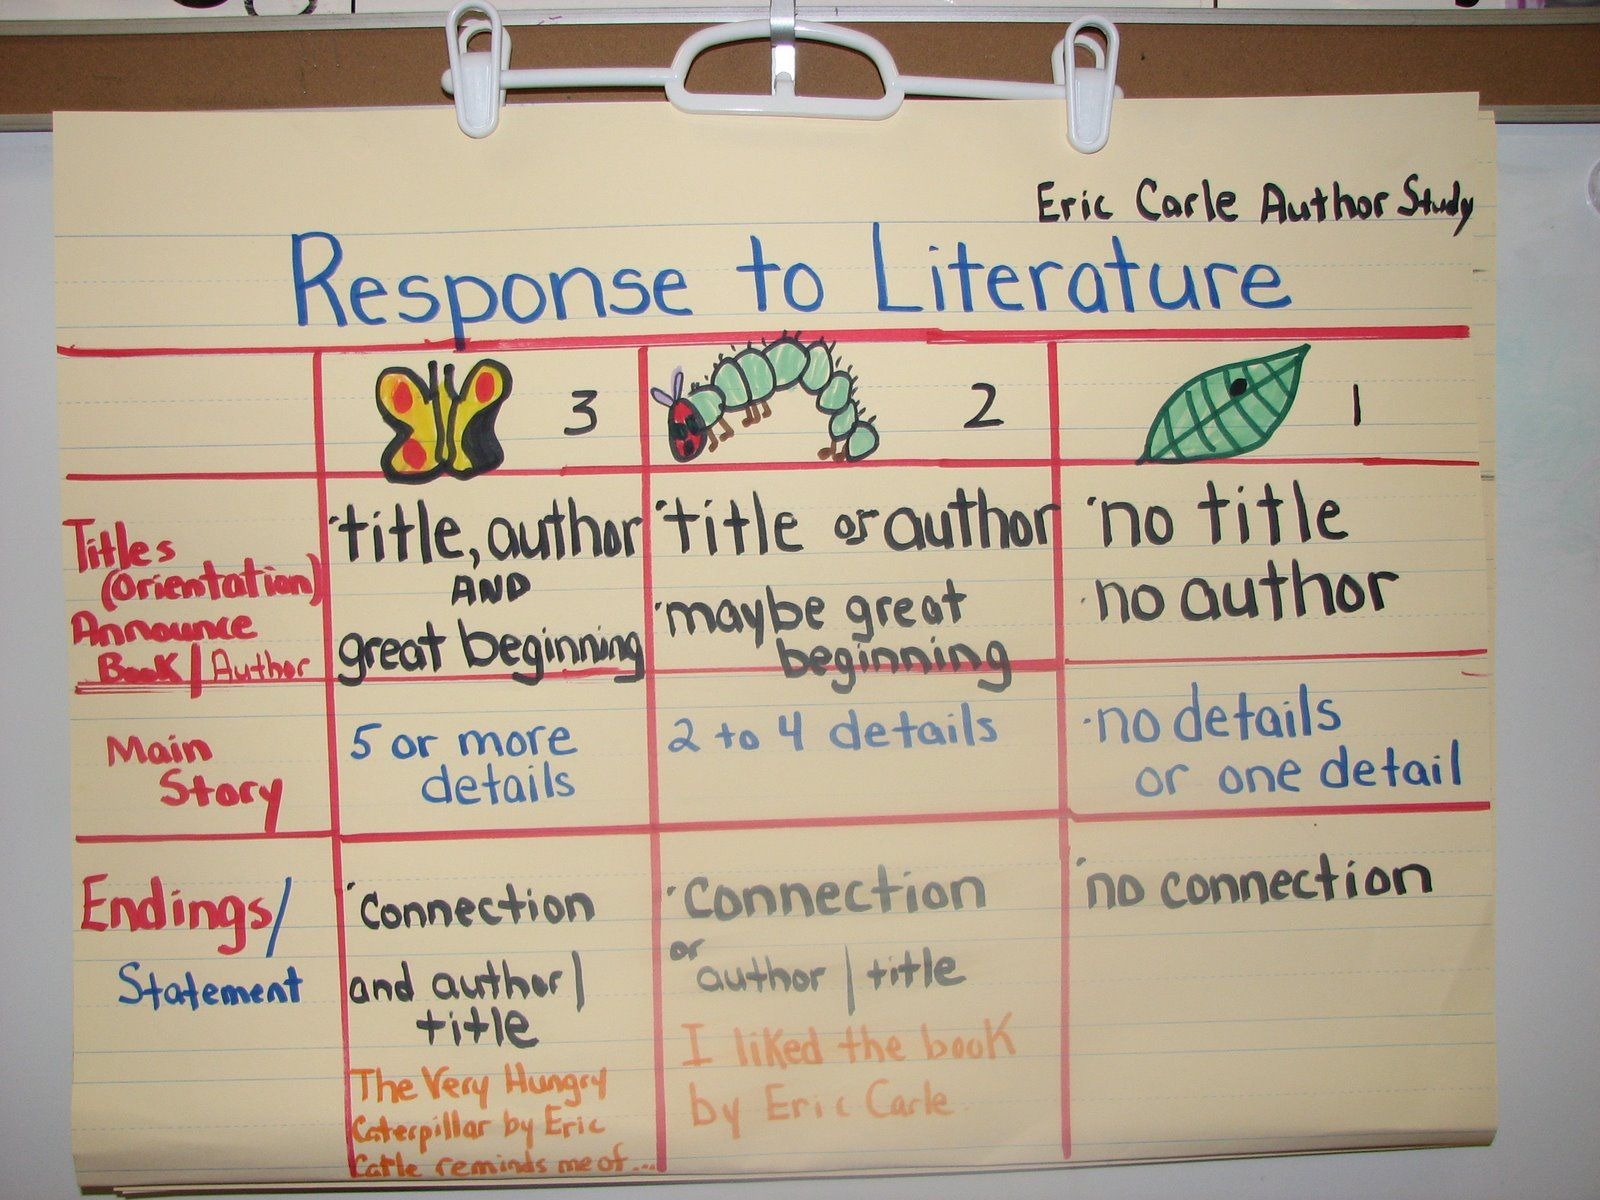 With Great Expectations: Rubrics- Response to Literature